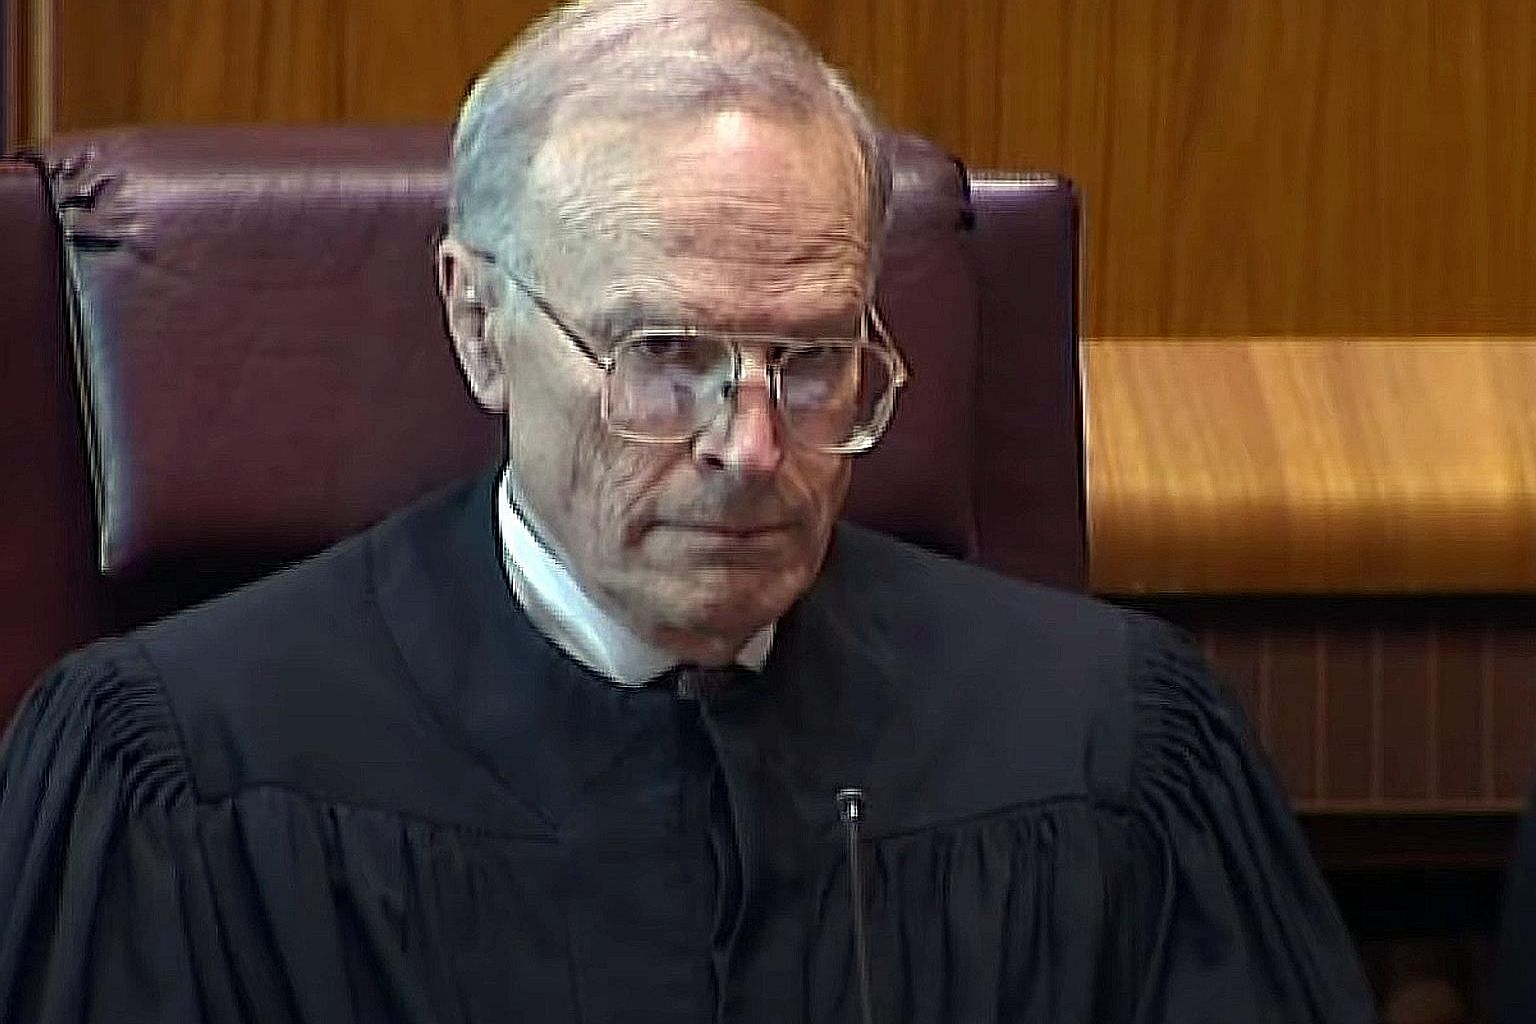 An independent inquiry by the High Court found that former Australian High Court judge Dyson Heydon sexually harassed six female judges' associates - five of whom worked for him - during his time on the bench from 2003 to 2013.